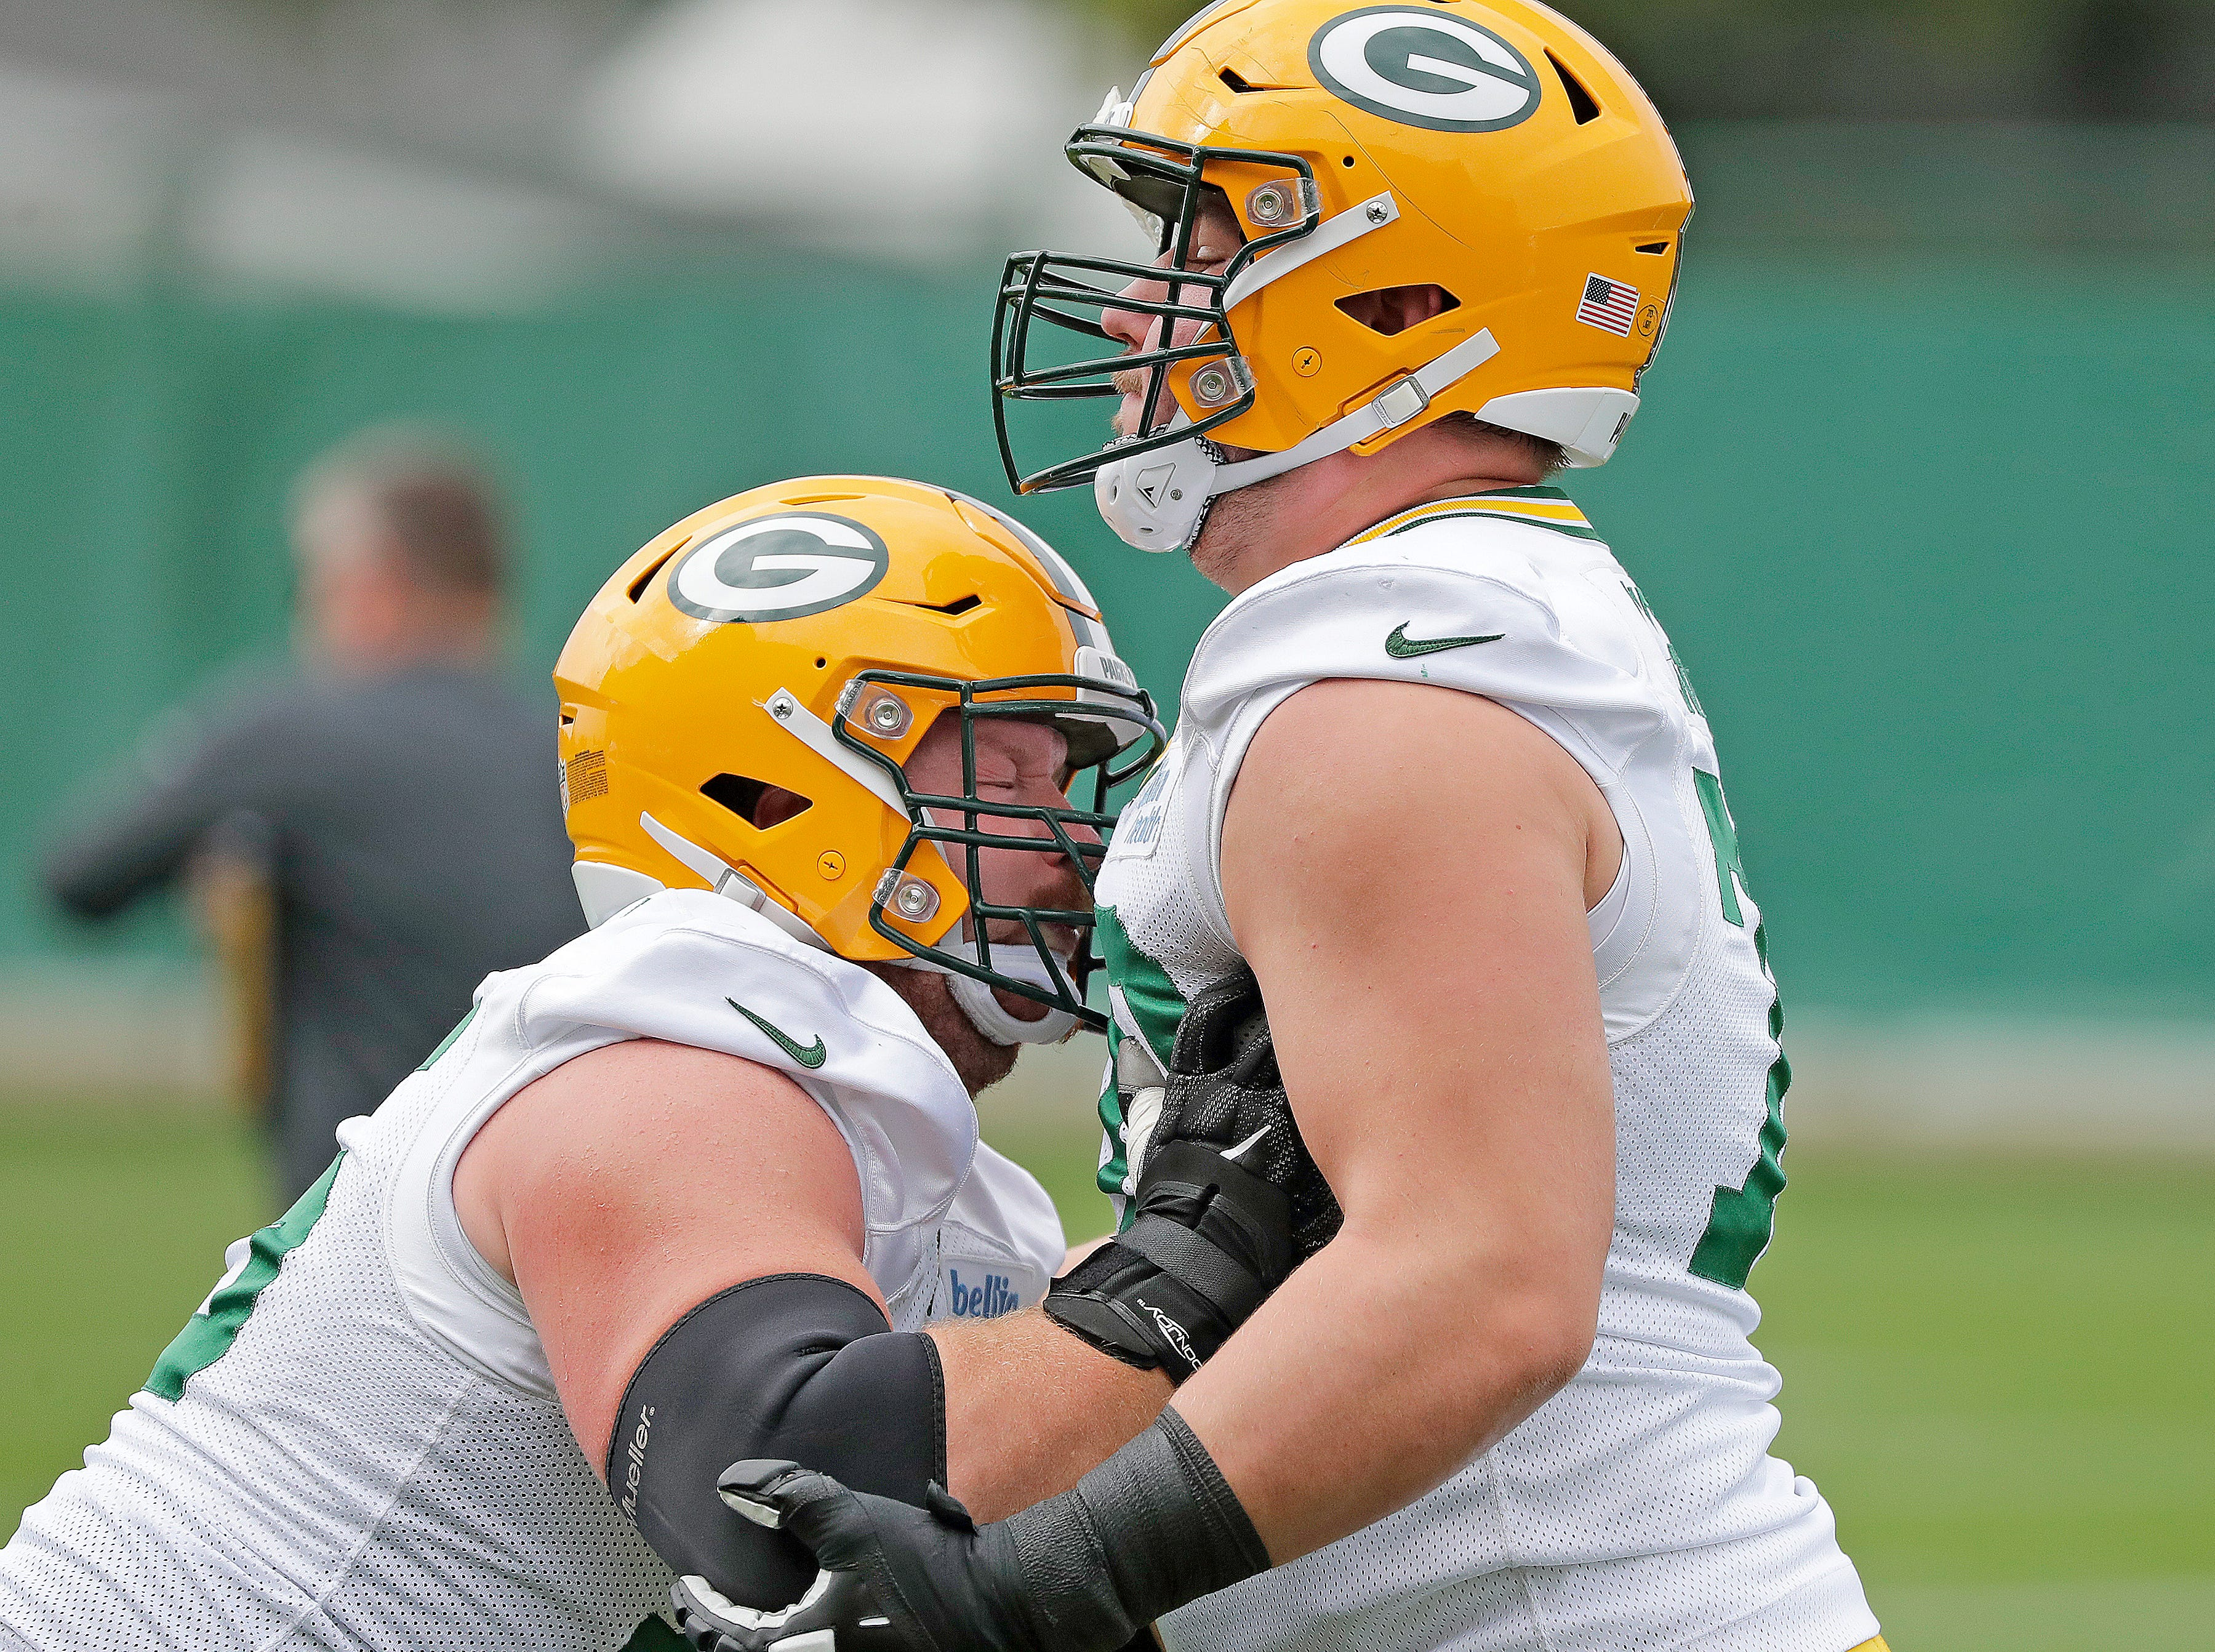 Green Bay Packers offensive tackle Bryan Bulaga (75) drills with offensive guard Alex Light (70) during practice Wednesday, October 3, 2018 at Clarke Hinkle Field in Ashwaubenon, Wis.